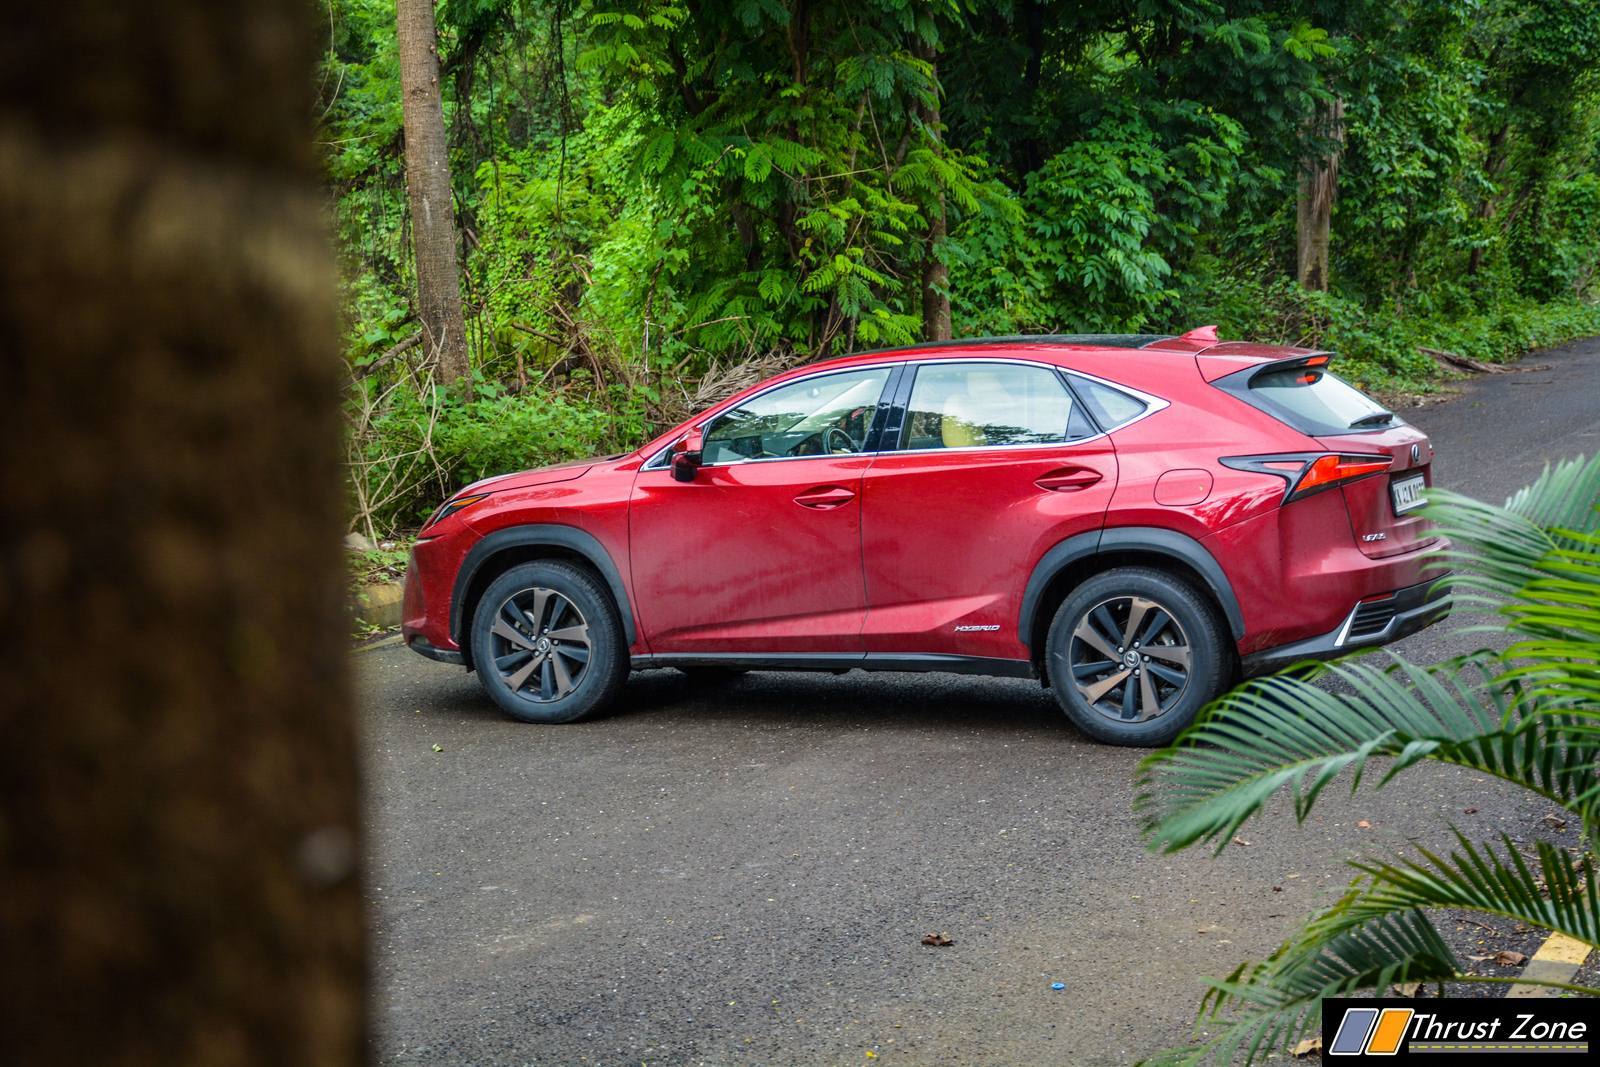 https://www.thrustzone.com/wp-content/uploads/2018/07/2018-Lexus-NX300h-India-Review-23.jpg